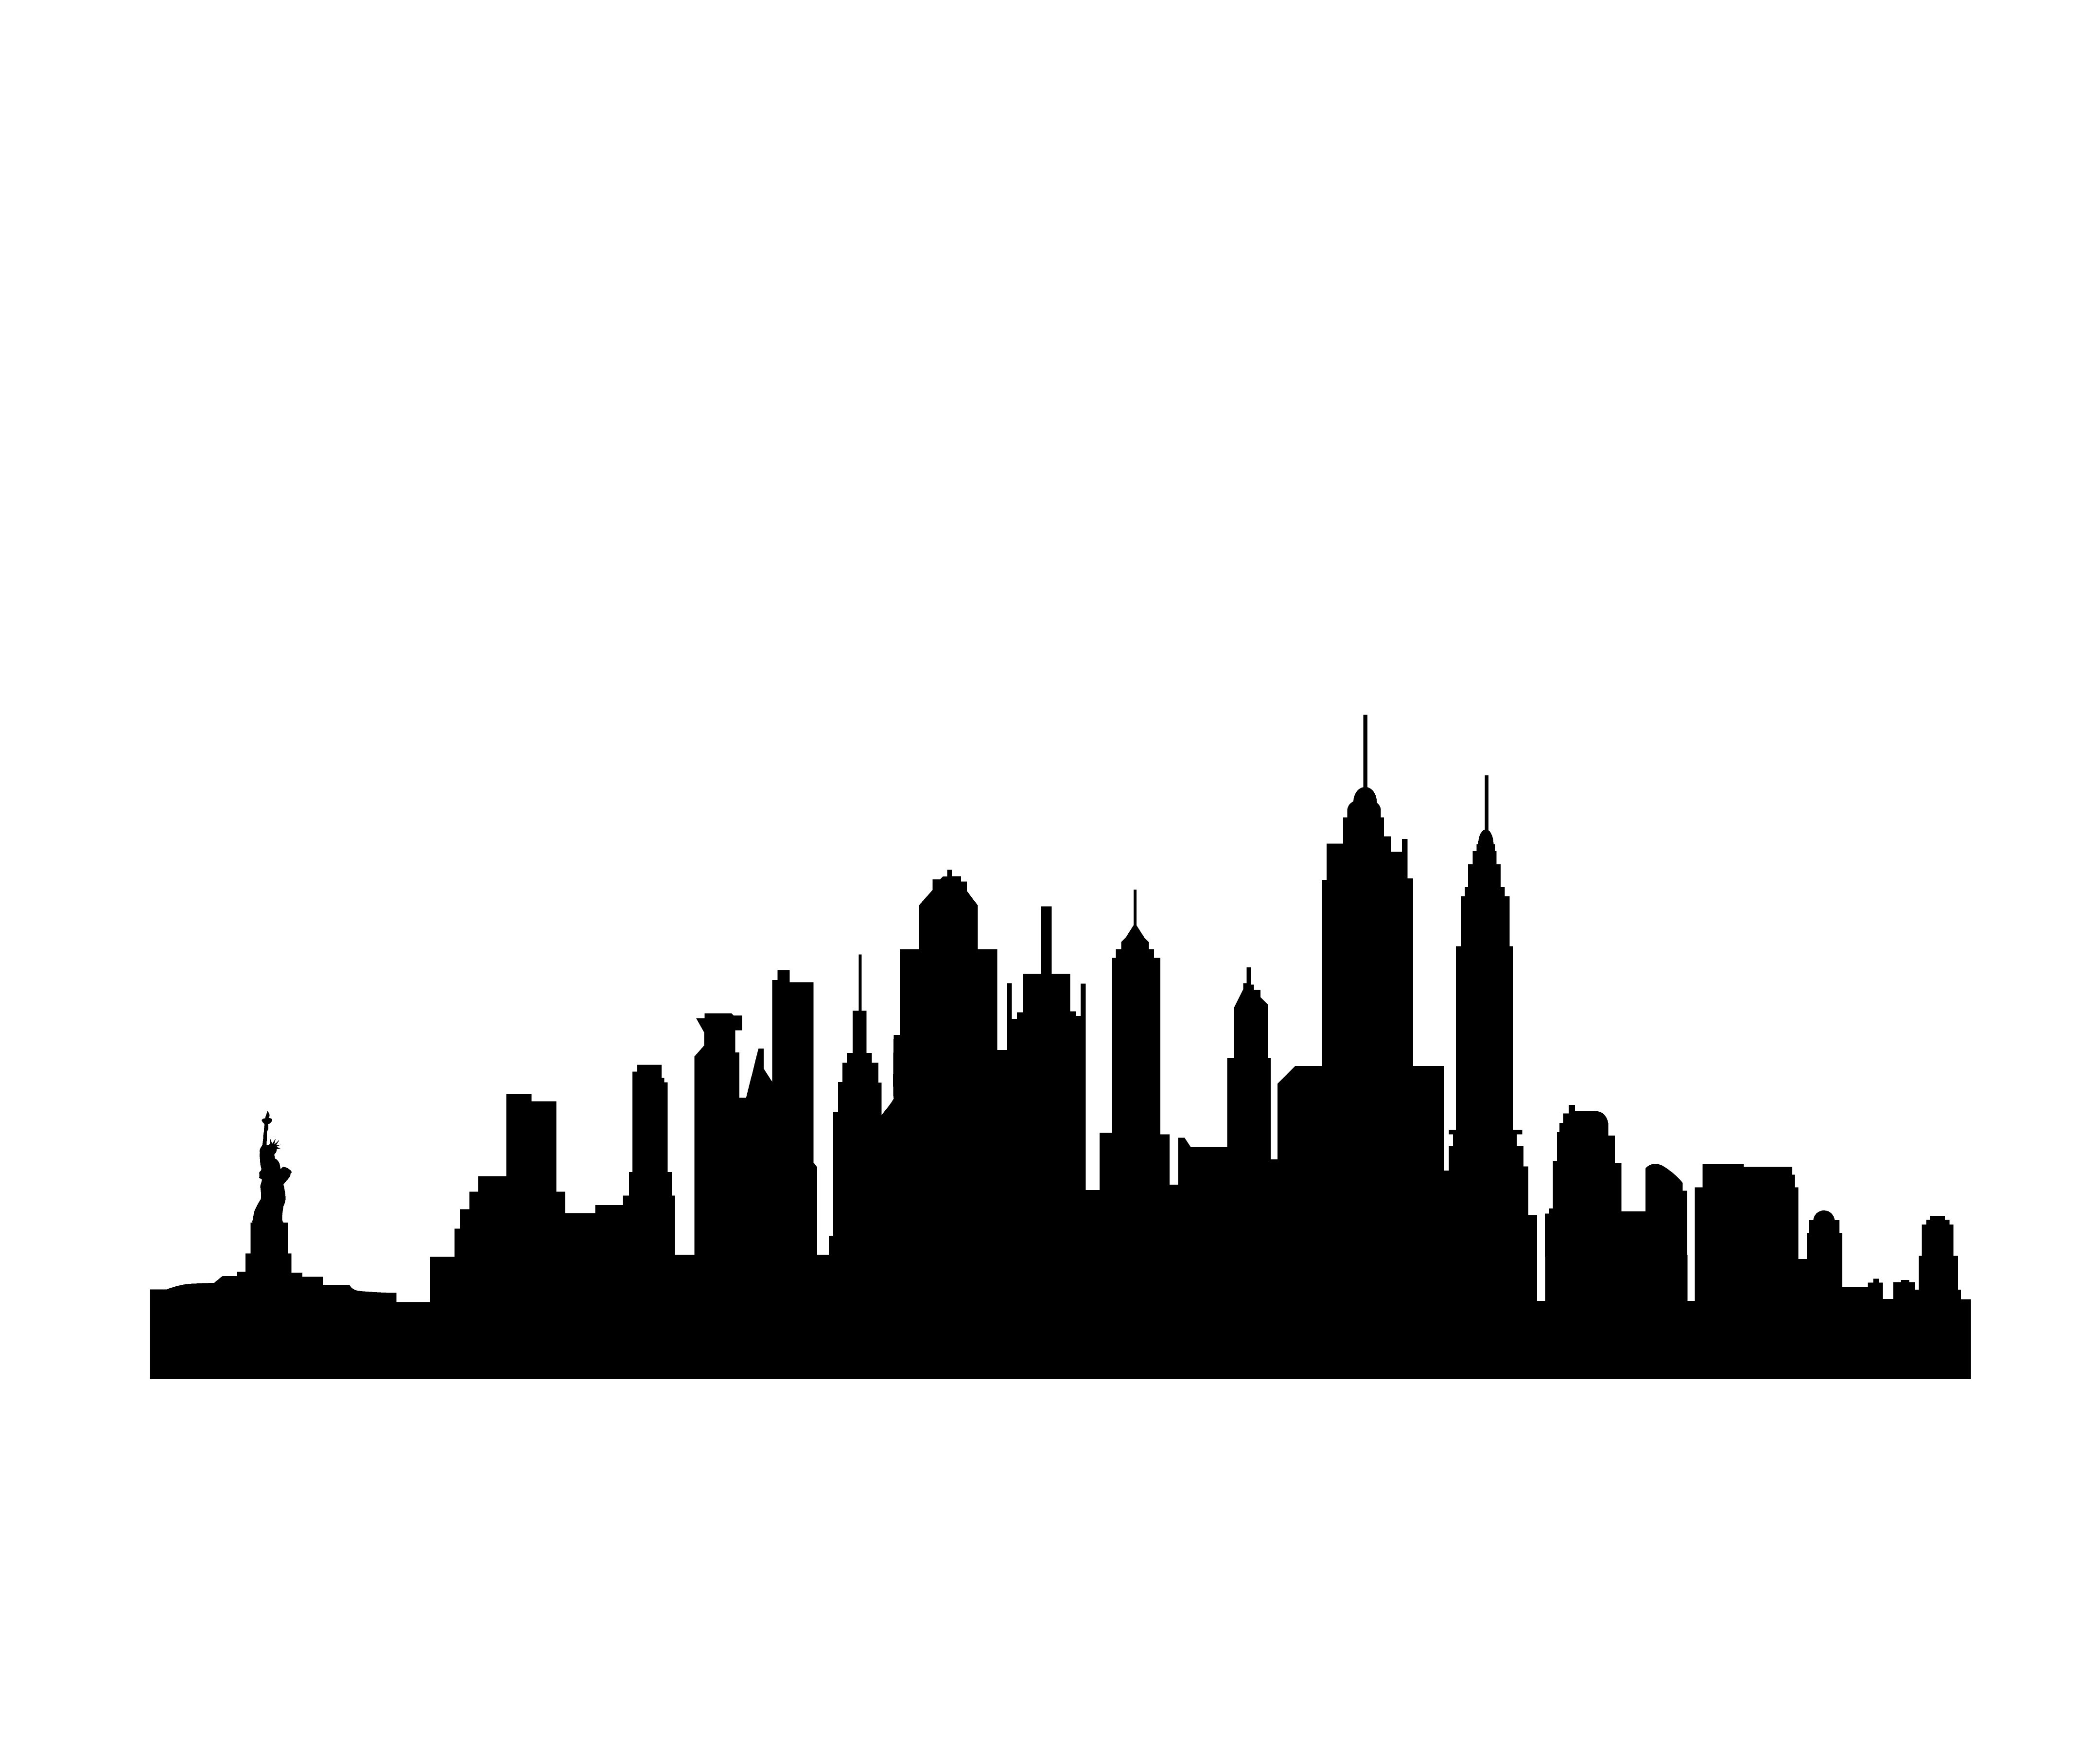 Free city skyline clipart clipart royalty free Free city skyline clipart 7 » Clipart Portal clipart royalty free